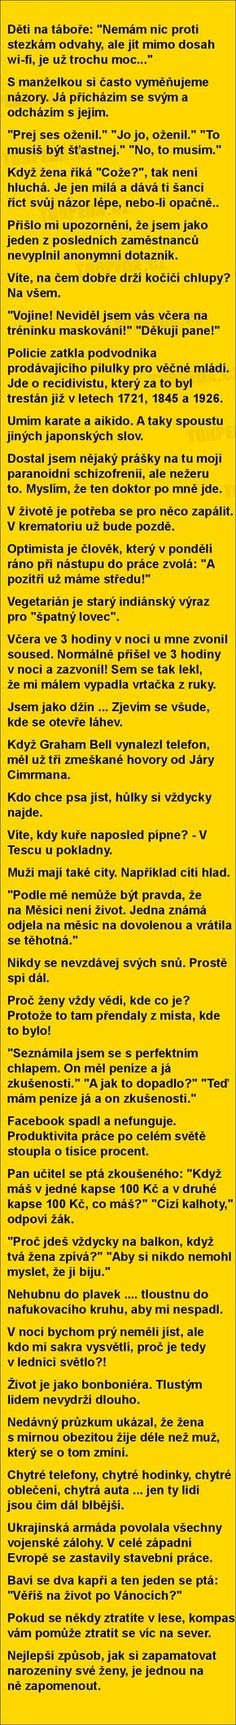 vtipné obrázky, vtipy a videa Good Jokes, Funny Jokes, Try Not To Laugh, Jokes Quotes, Funny Photos, Picture Quotes, The Funny, Quotations, Laughter